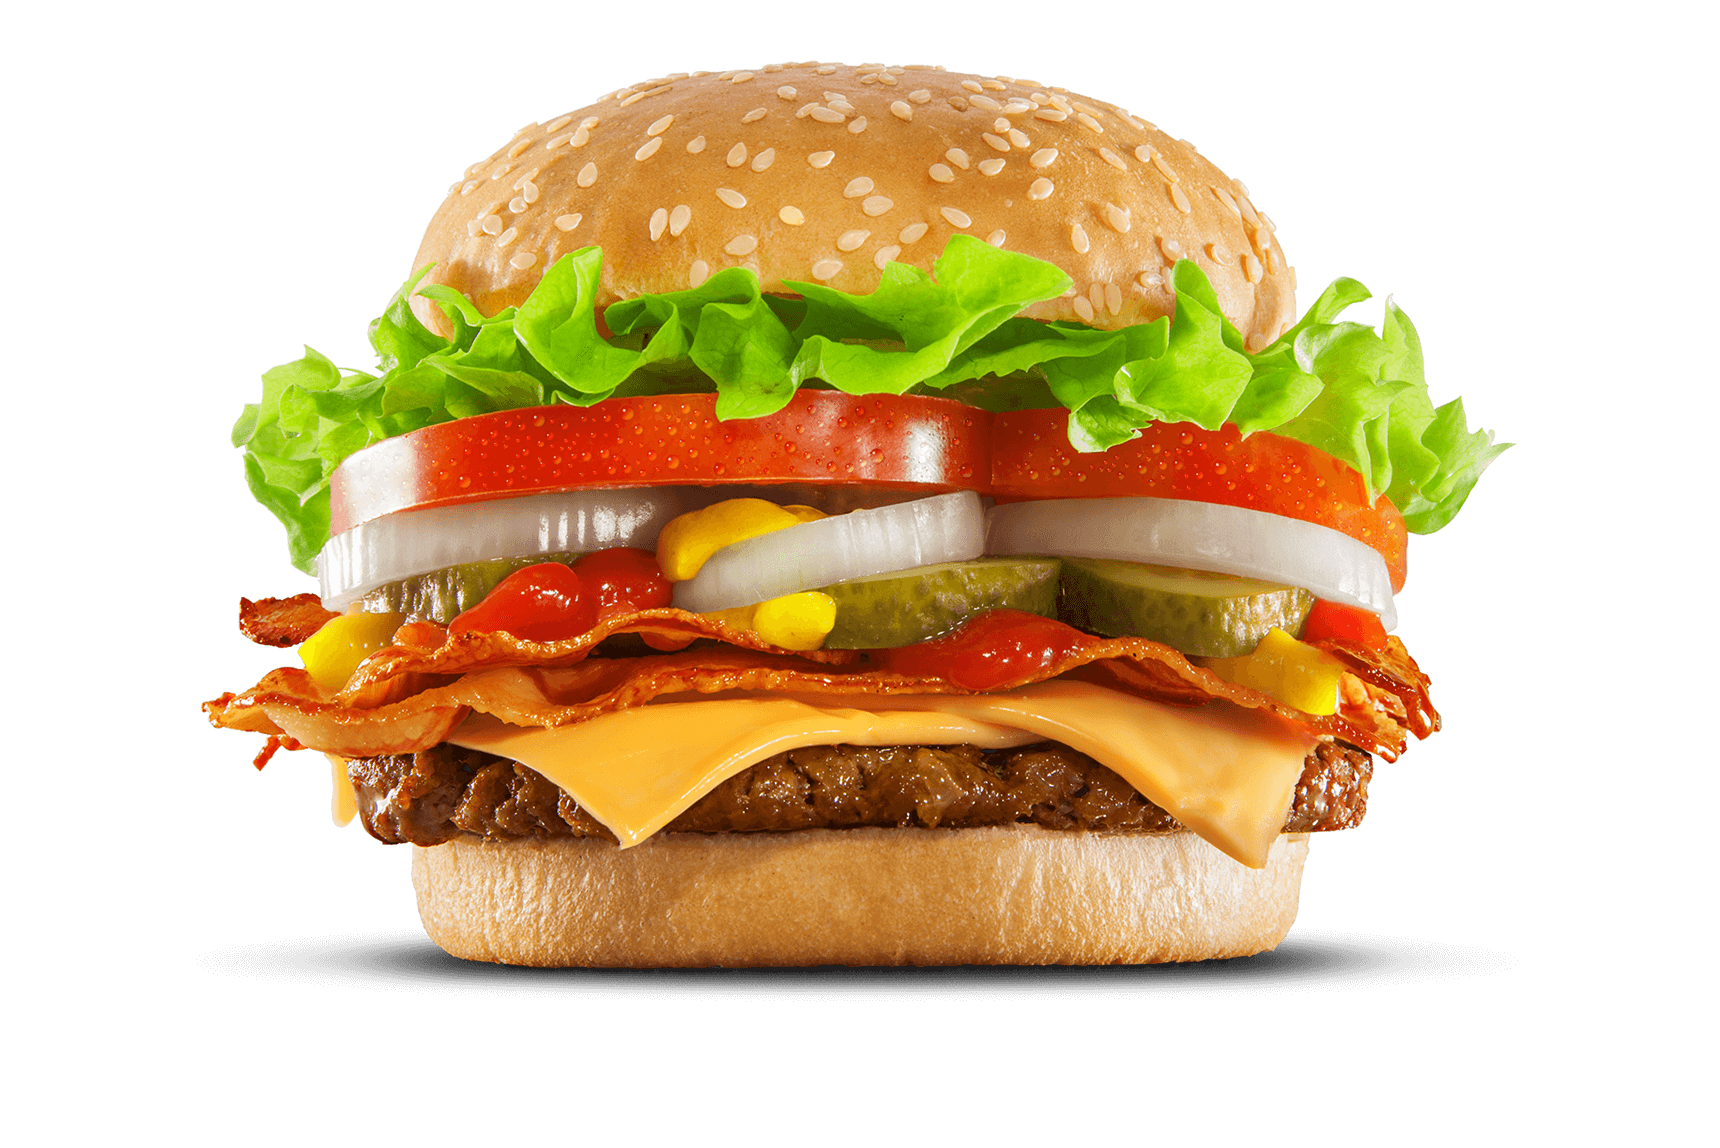 Innovation Consulting Case Study for Burger King